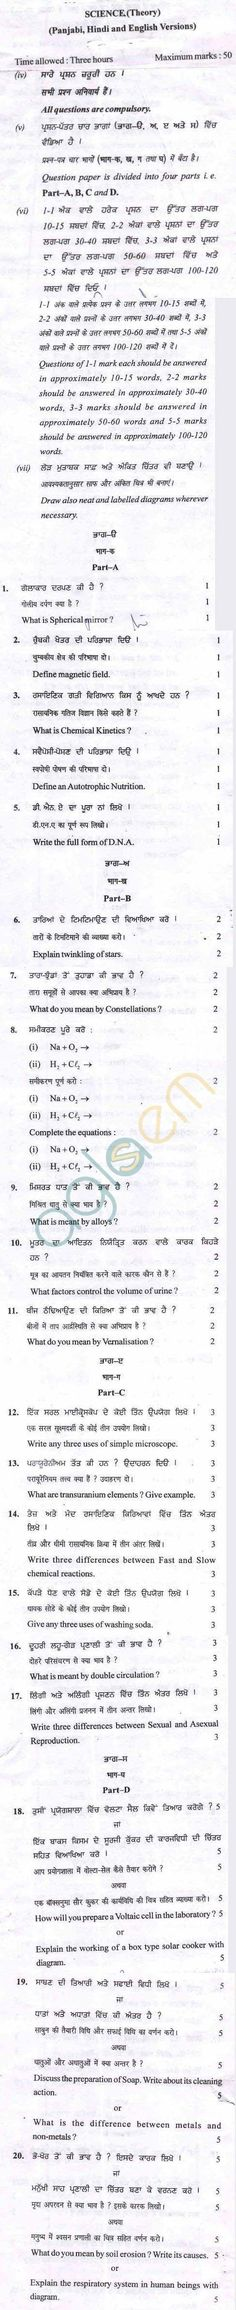 CBSE Solved Sample Papers for Class 10 Maths SA2 - Set A | exam ...